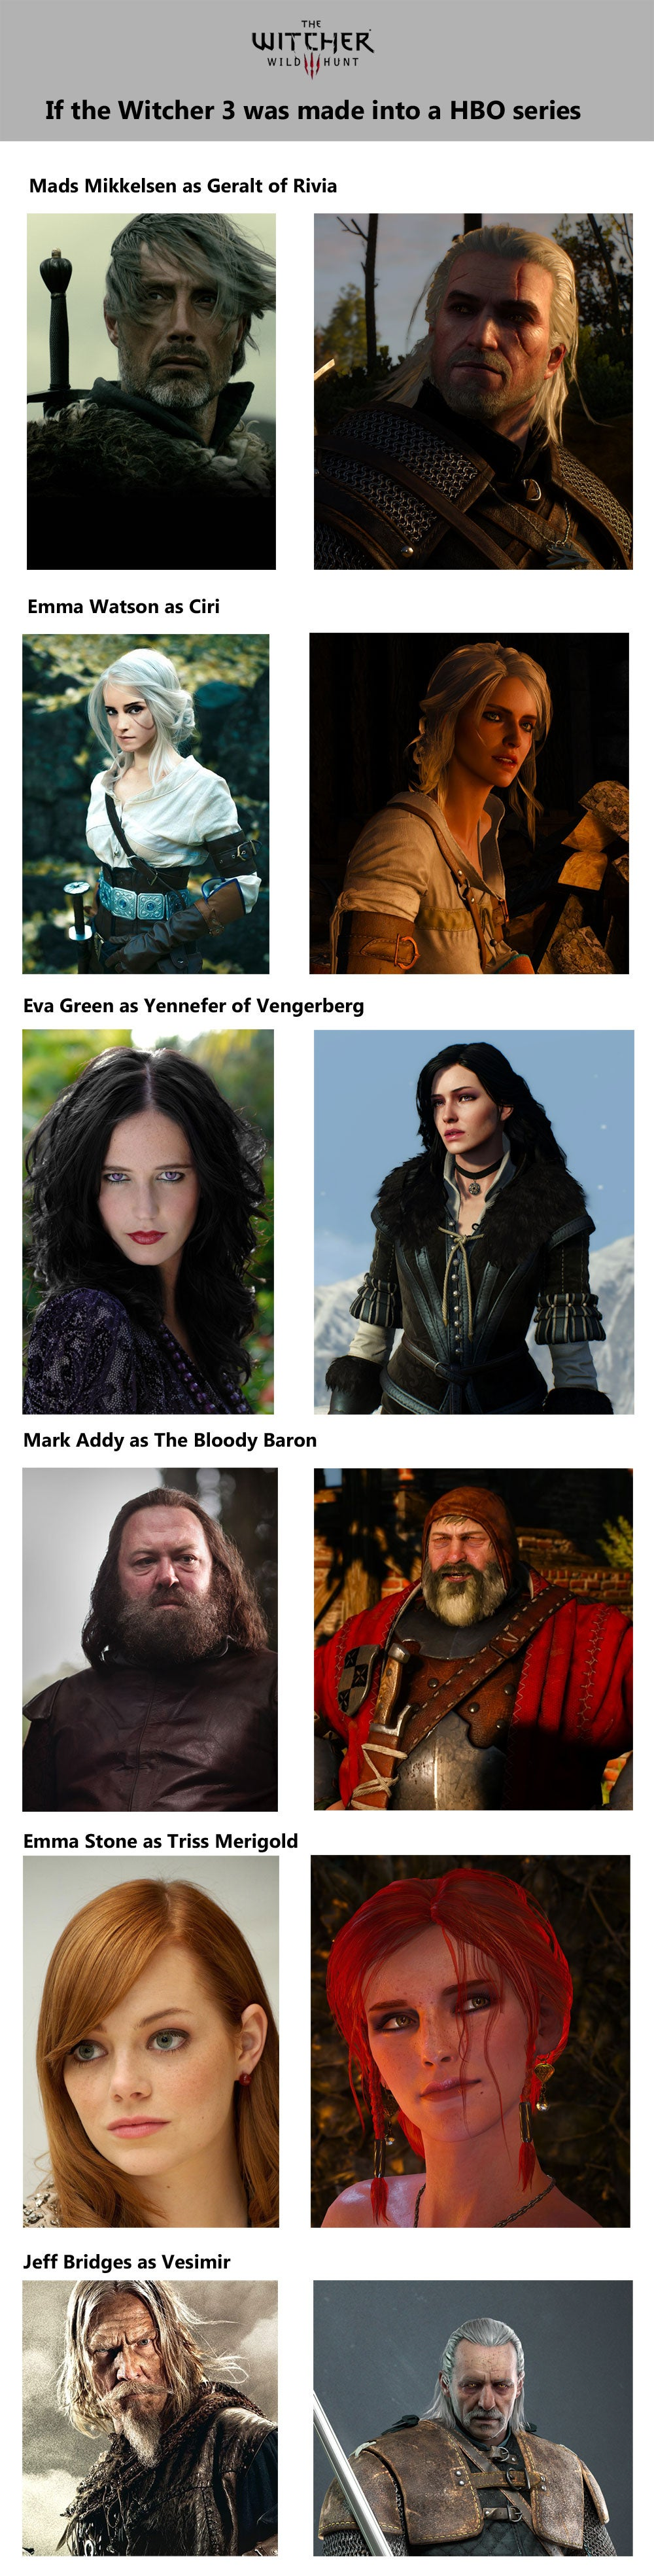 If HBO Made a Witcher 3 Series